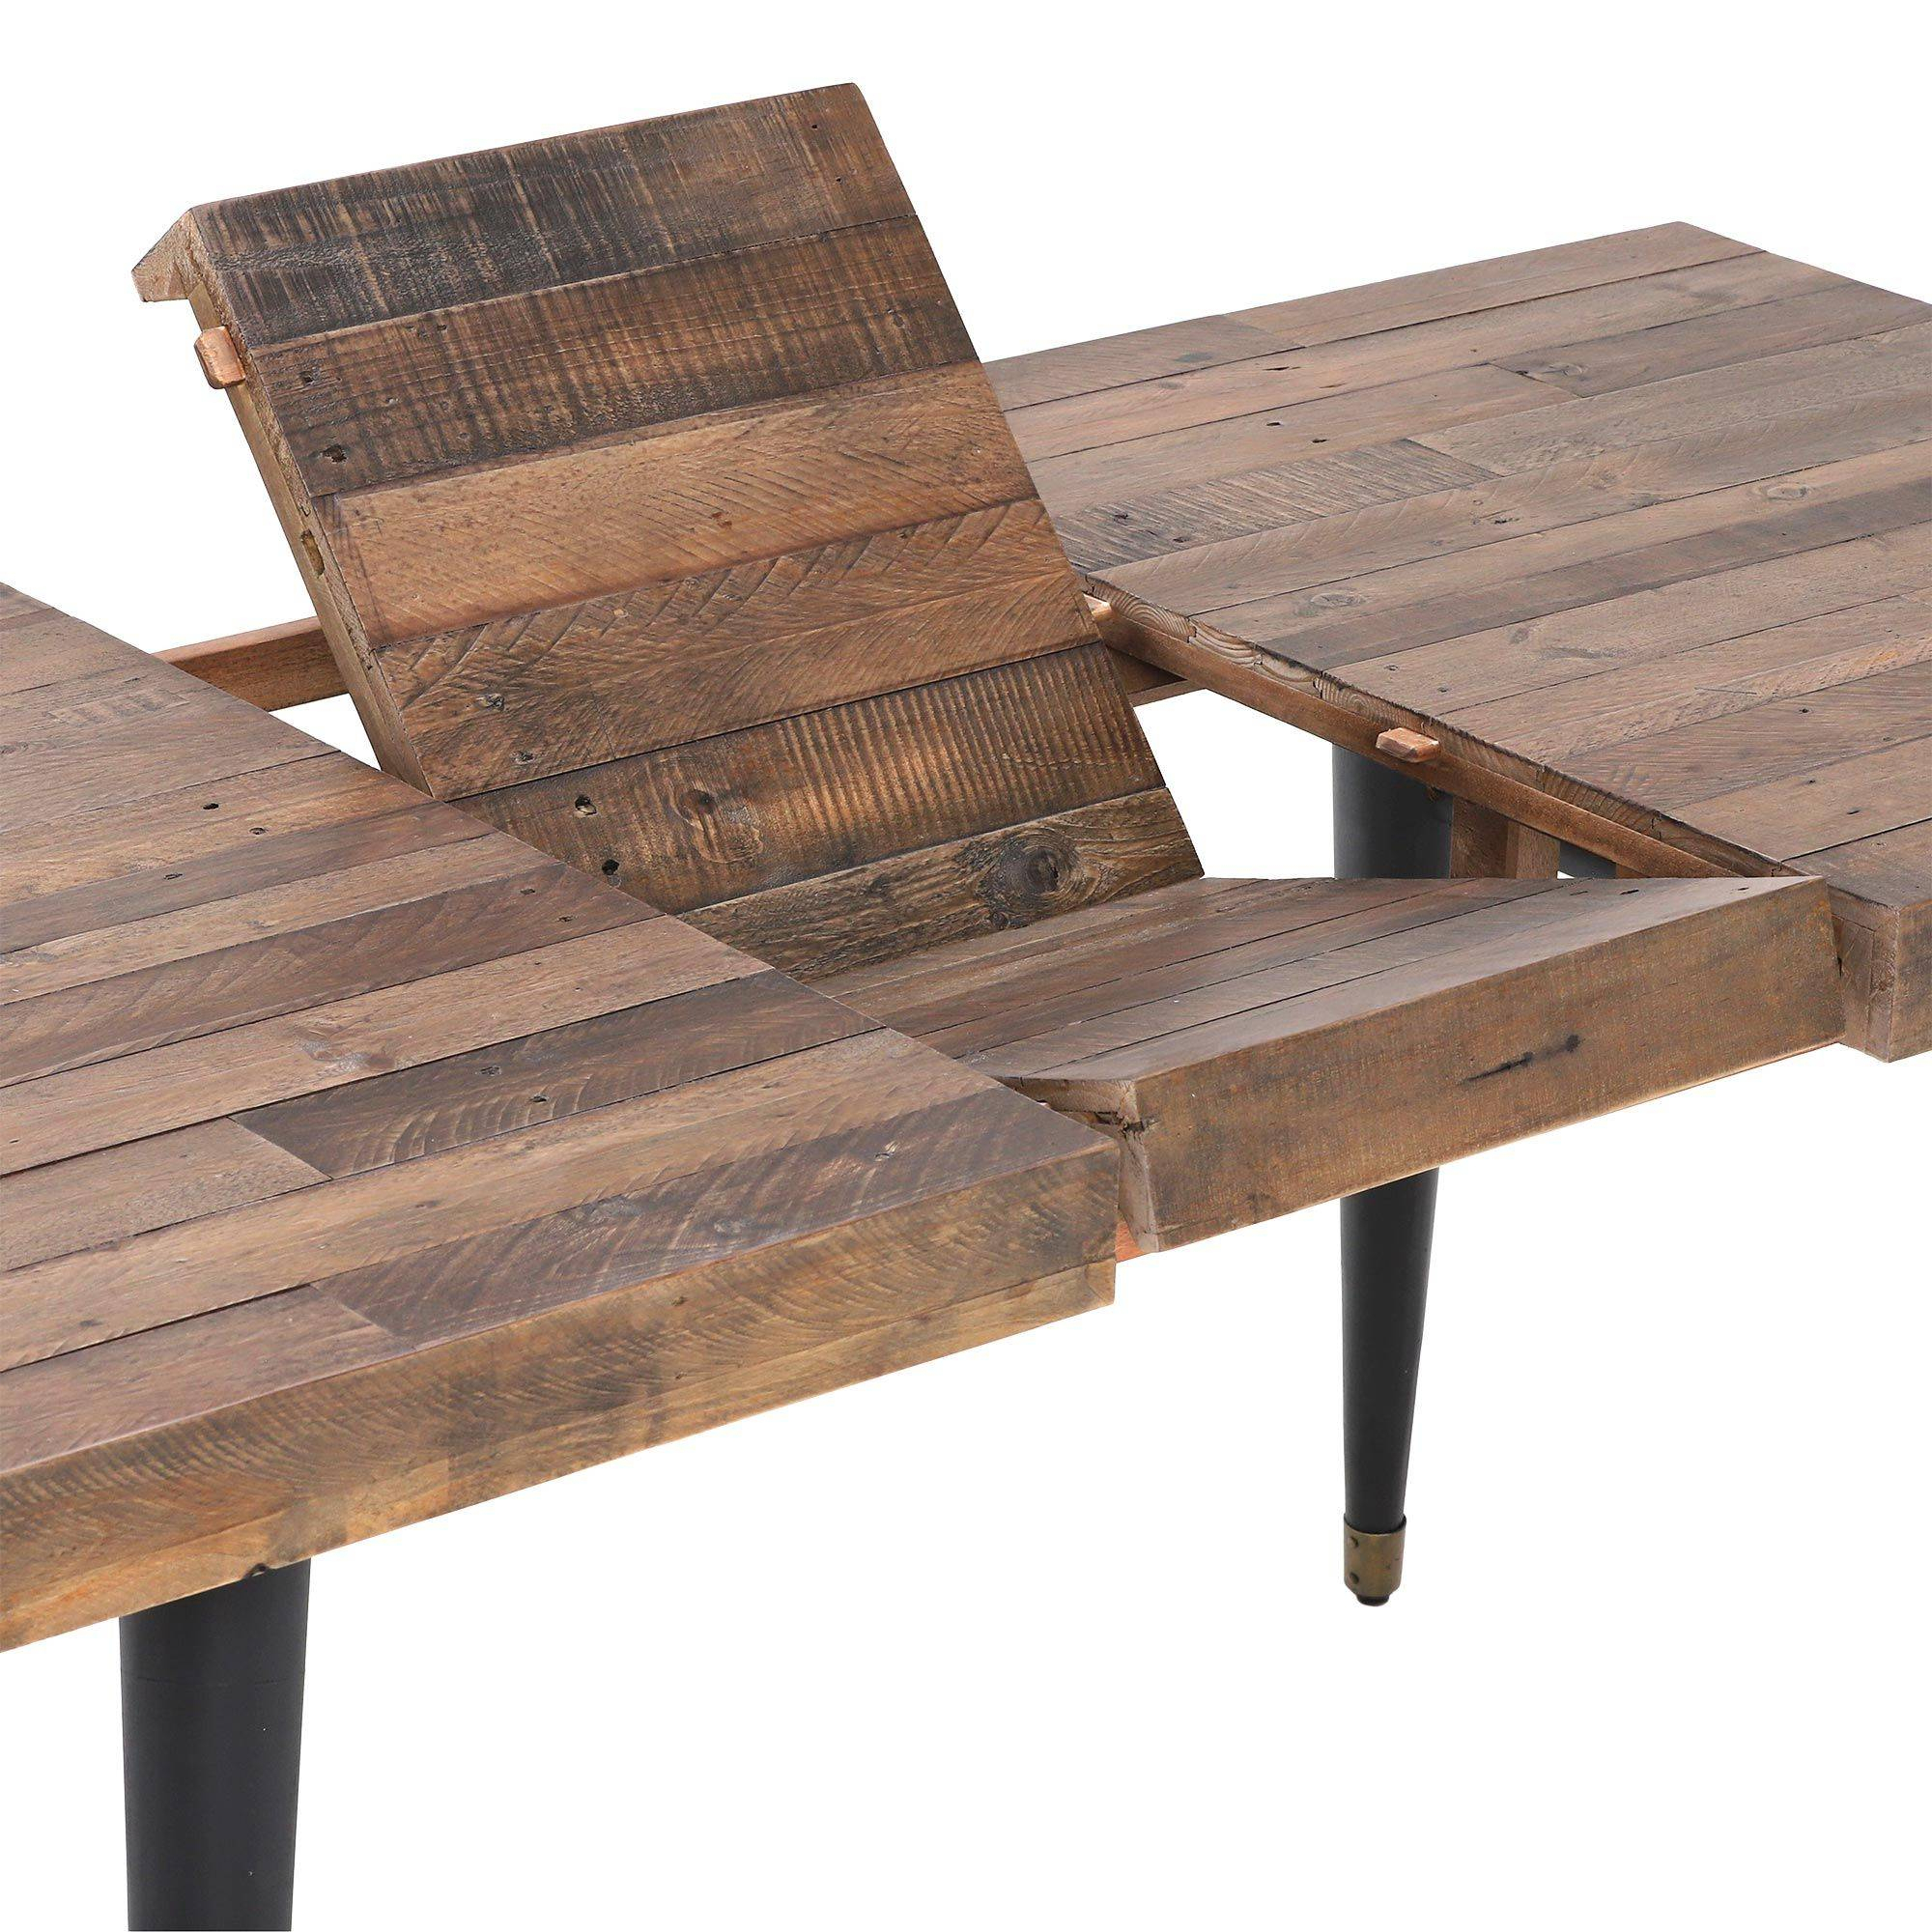 Furniture Dining Room Reclaimed Extending Table Wood With 2017 Hart Reclaimed Wood Extending Dining Tables (Image 10 of 25)